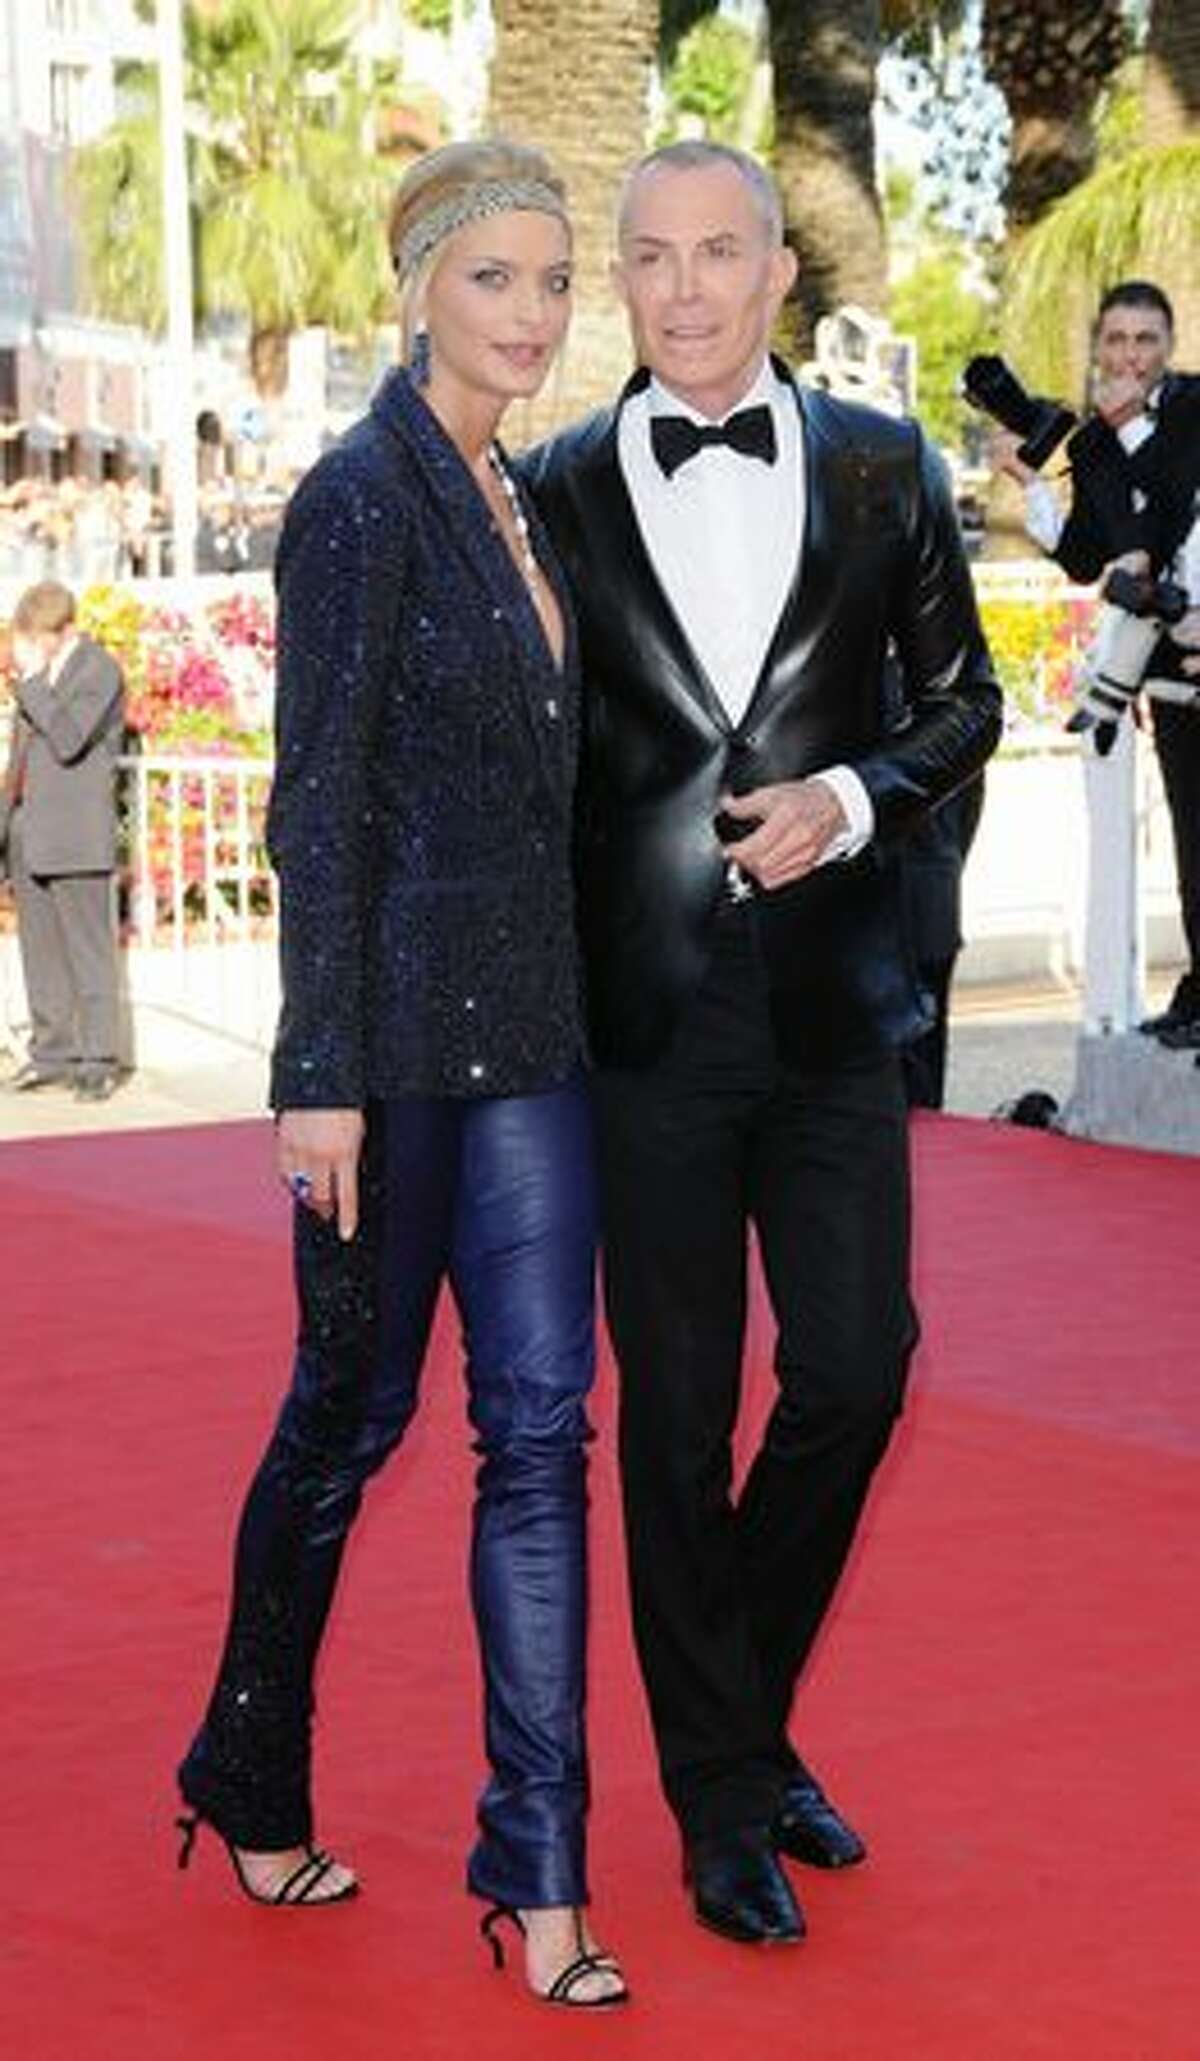 Designer Jean-Claude Jitrois (R) and Sarah Marshall attend the A Prophet Premiere held at the Palais Des Festivals.